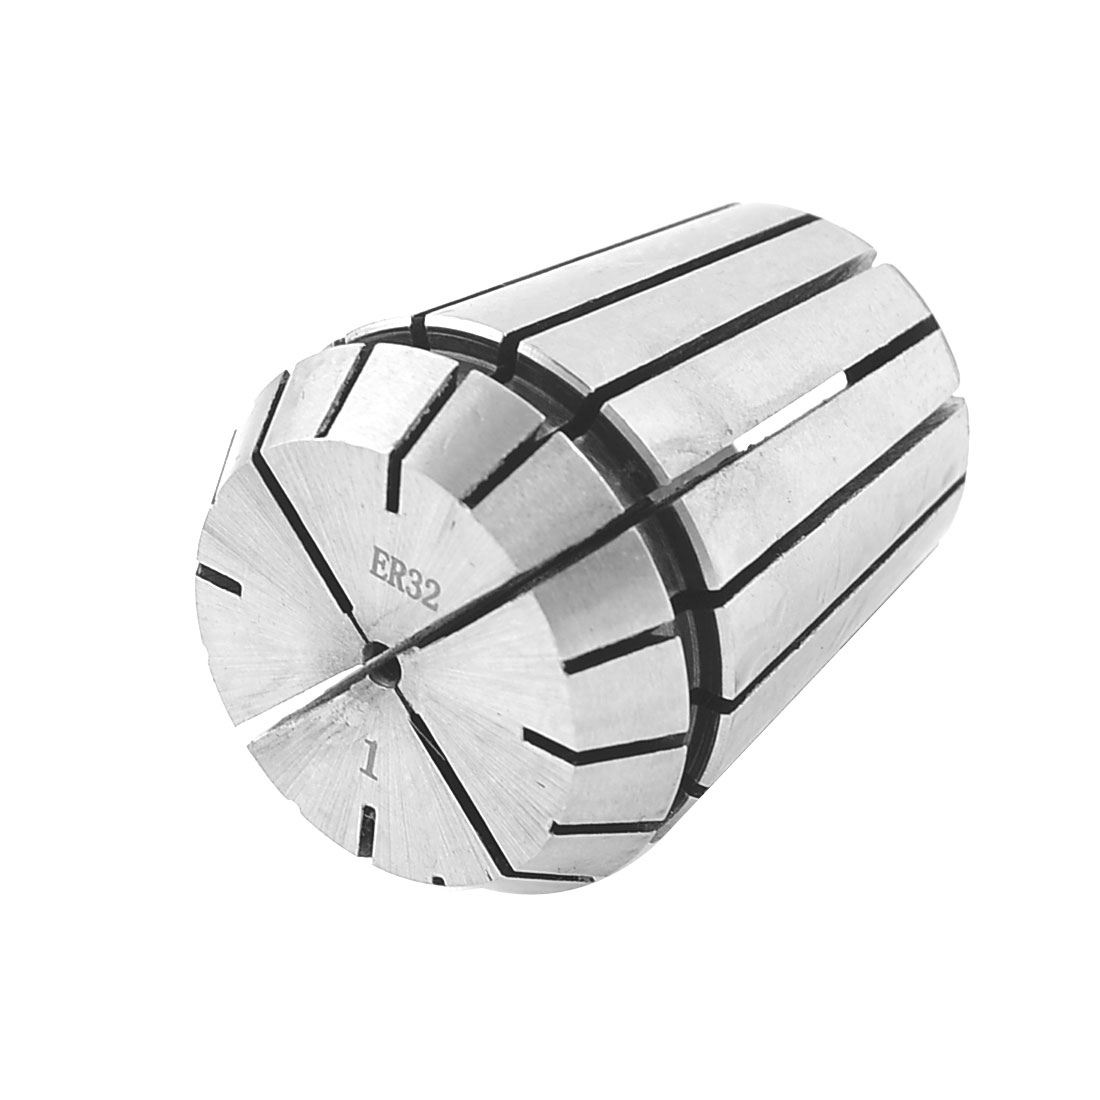 ER32 1.0mm tainless Steel Spring Collet Chuck Milling Lathe Tool